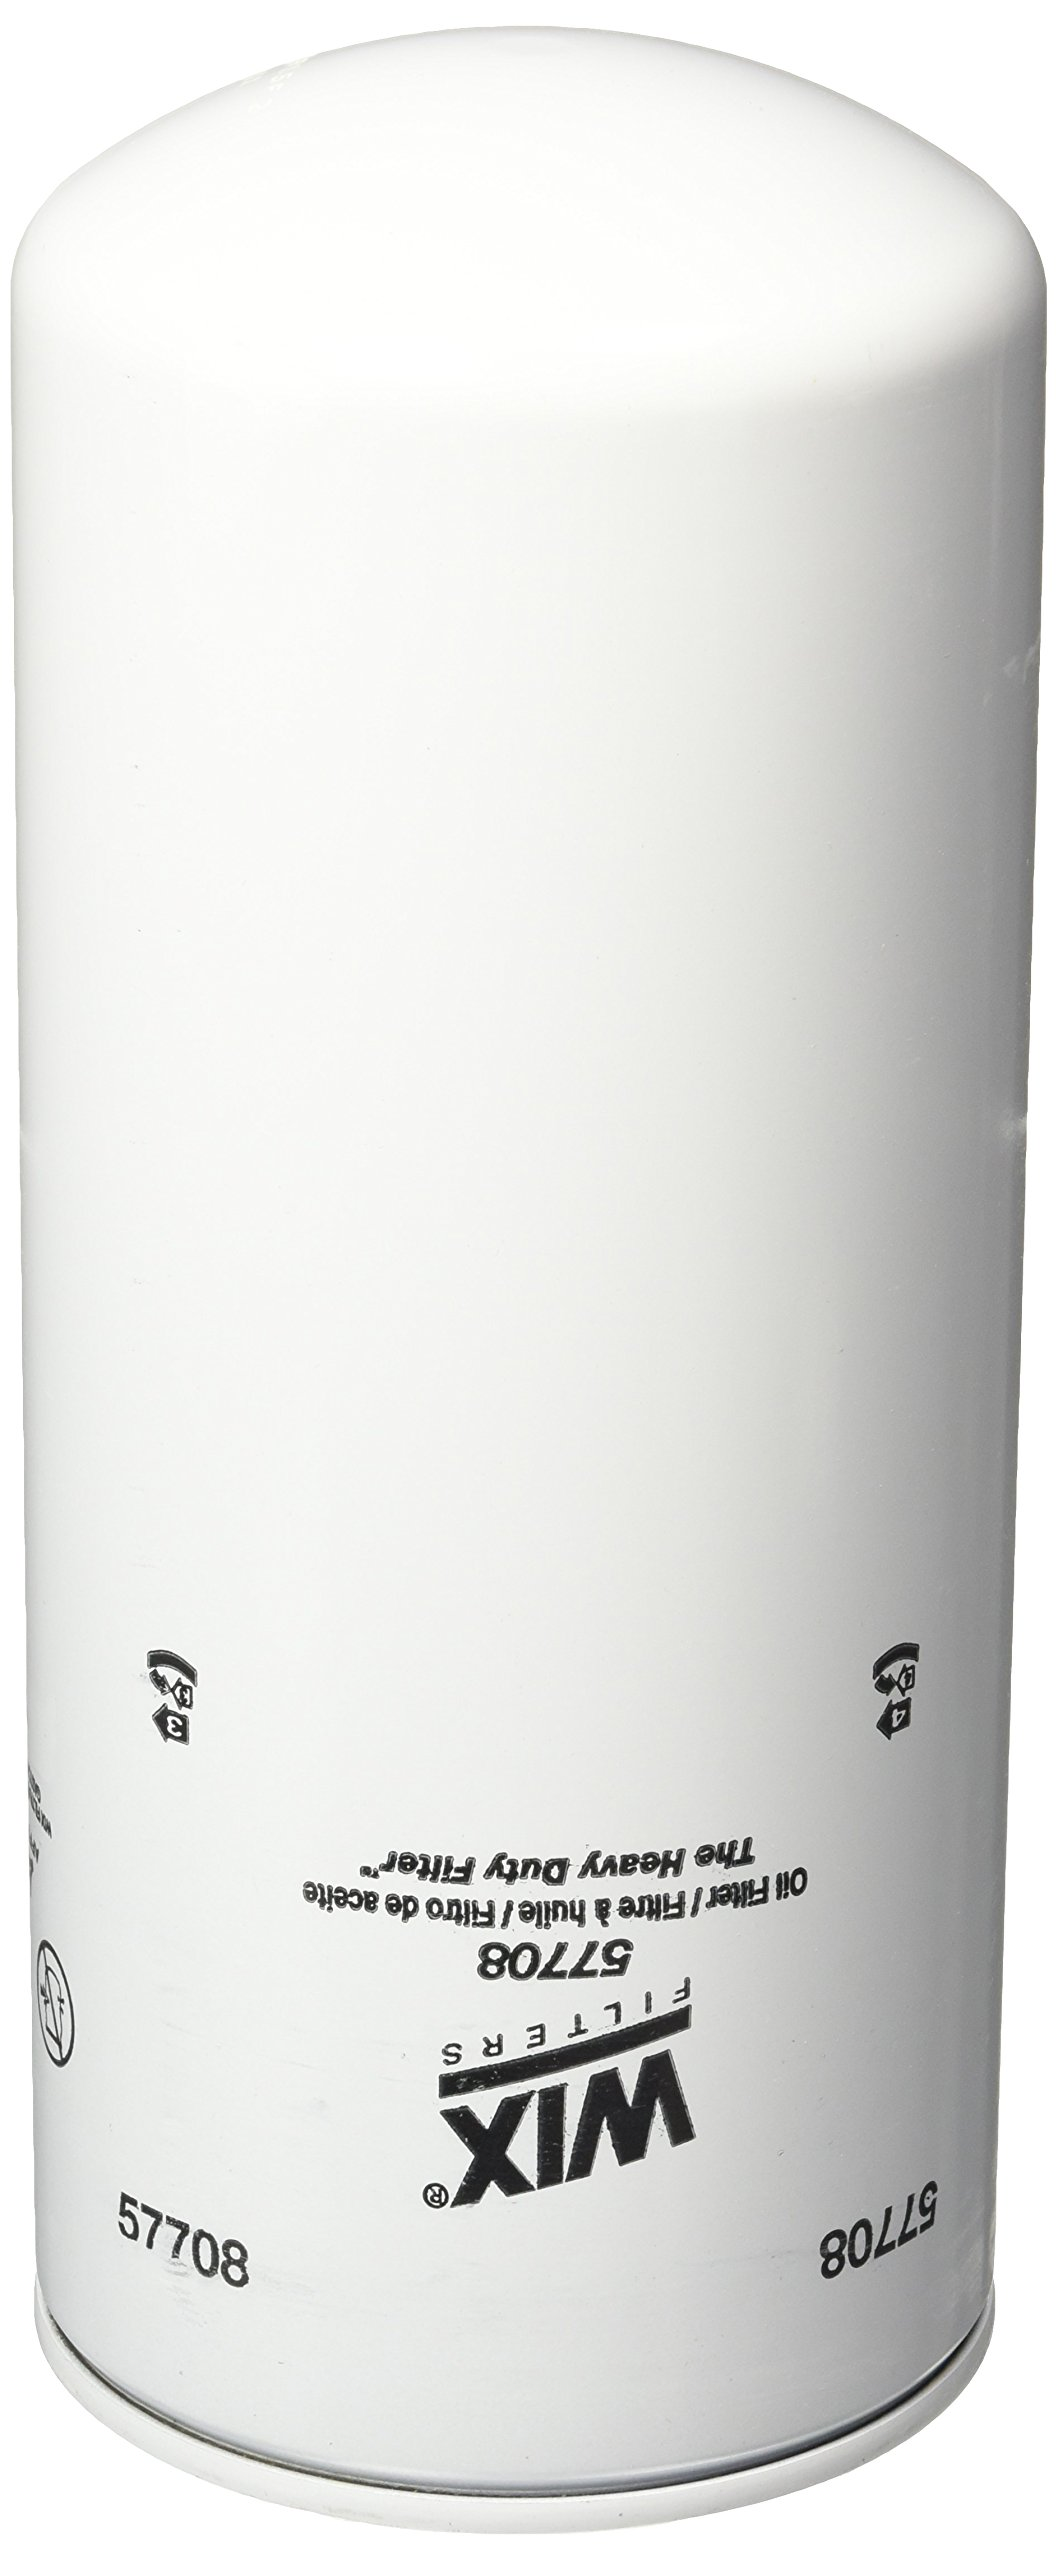 WIX Filters - 57708 Heavy Duty Spin-On Lube Filter, Pack of 1 by Wix